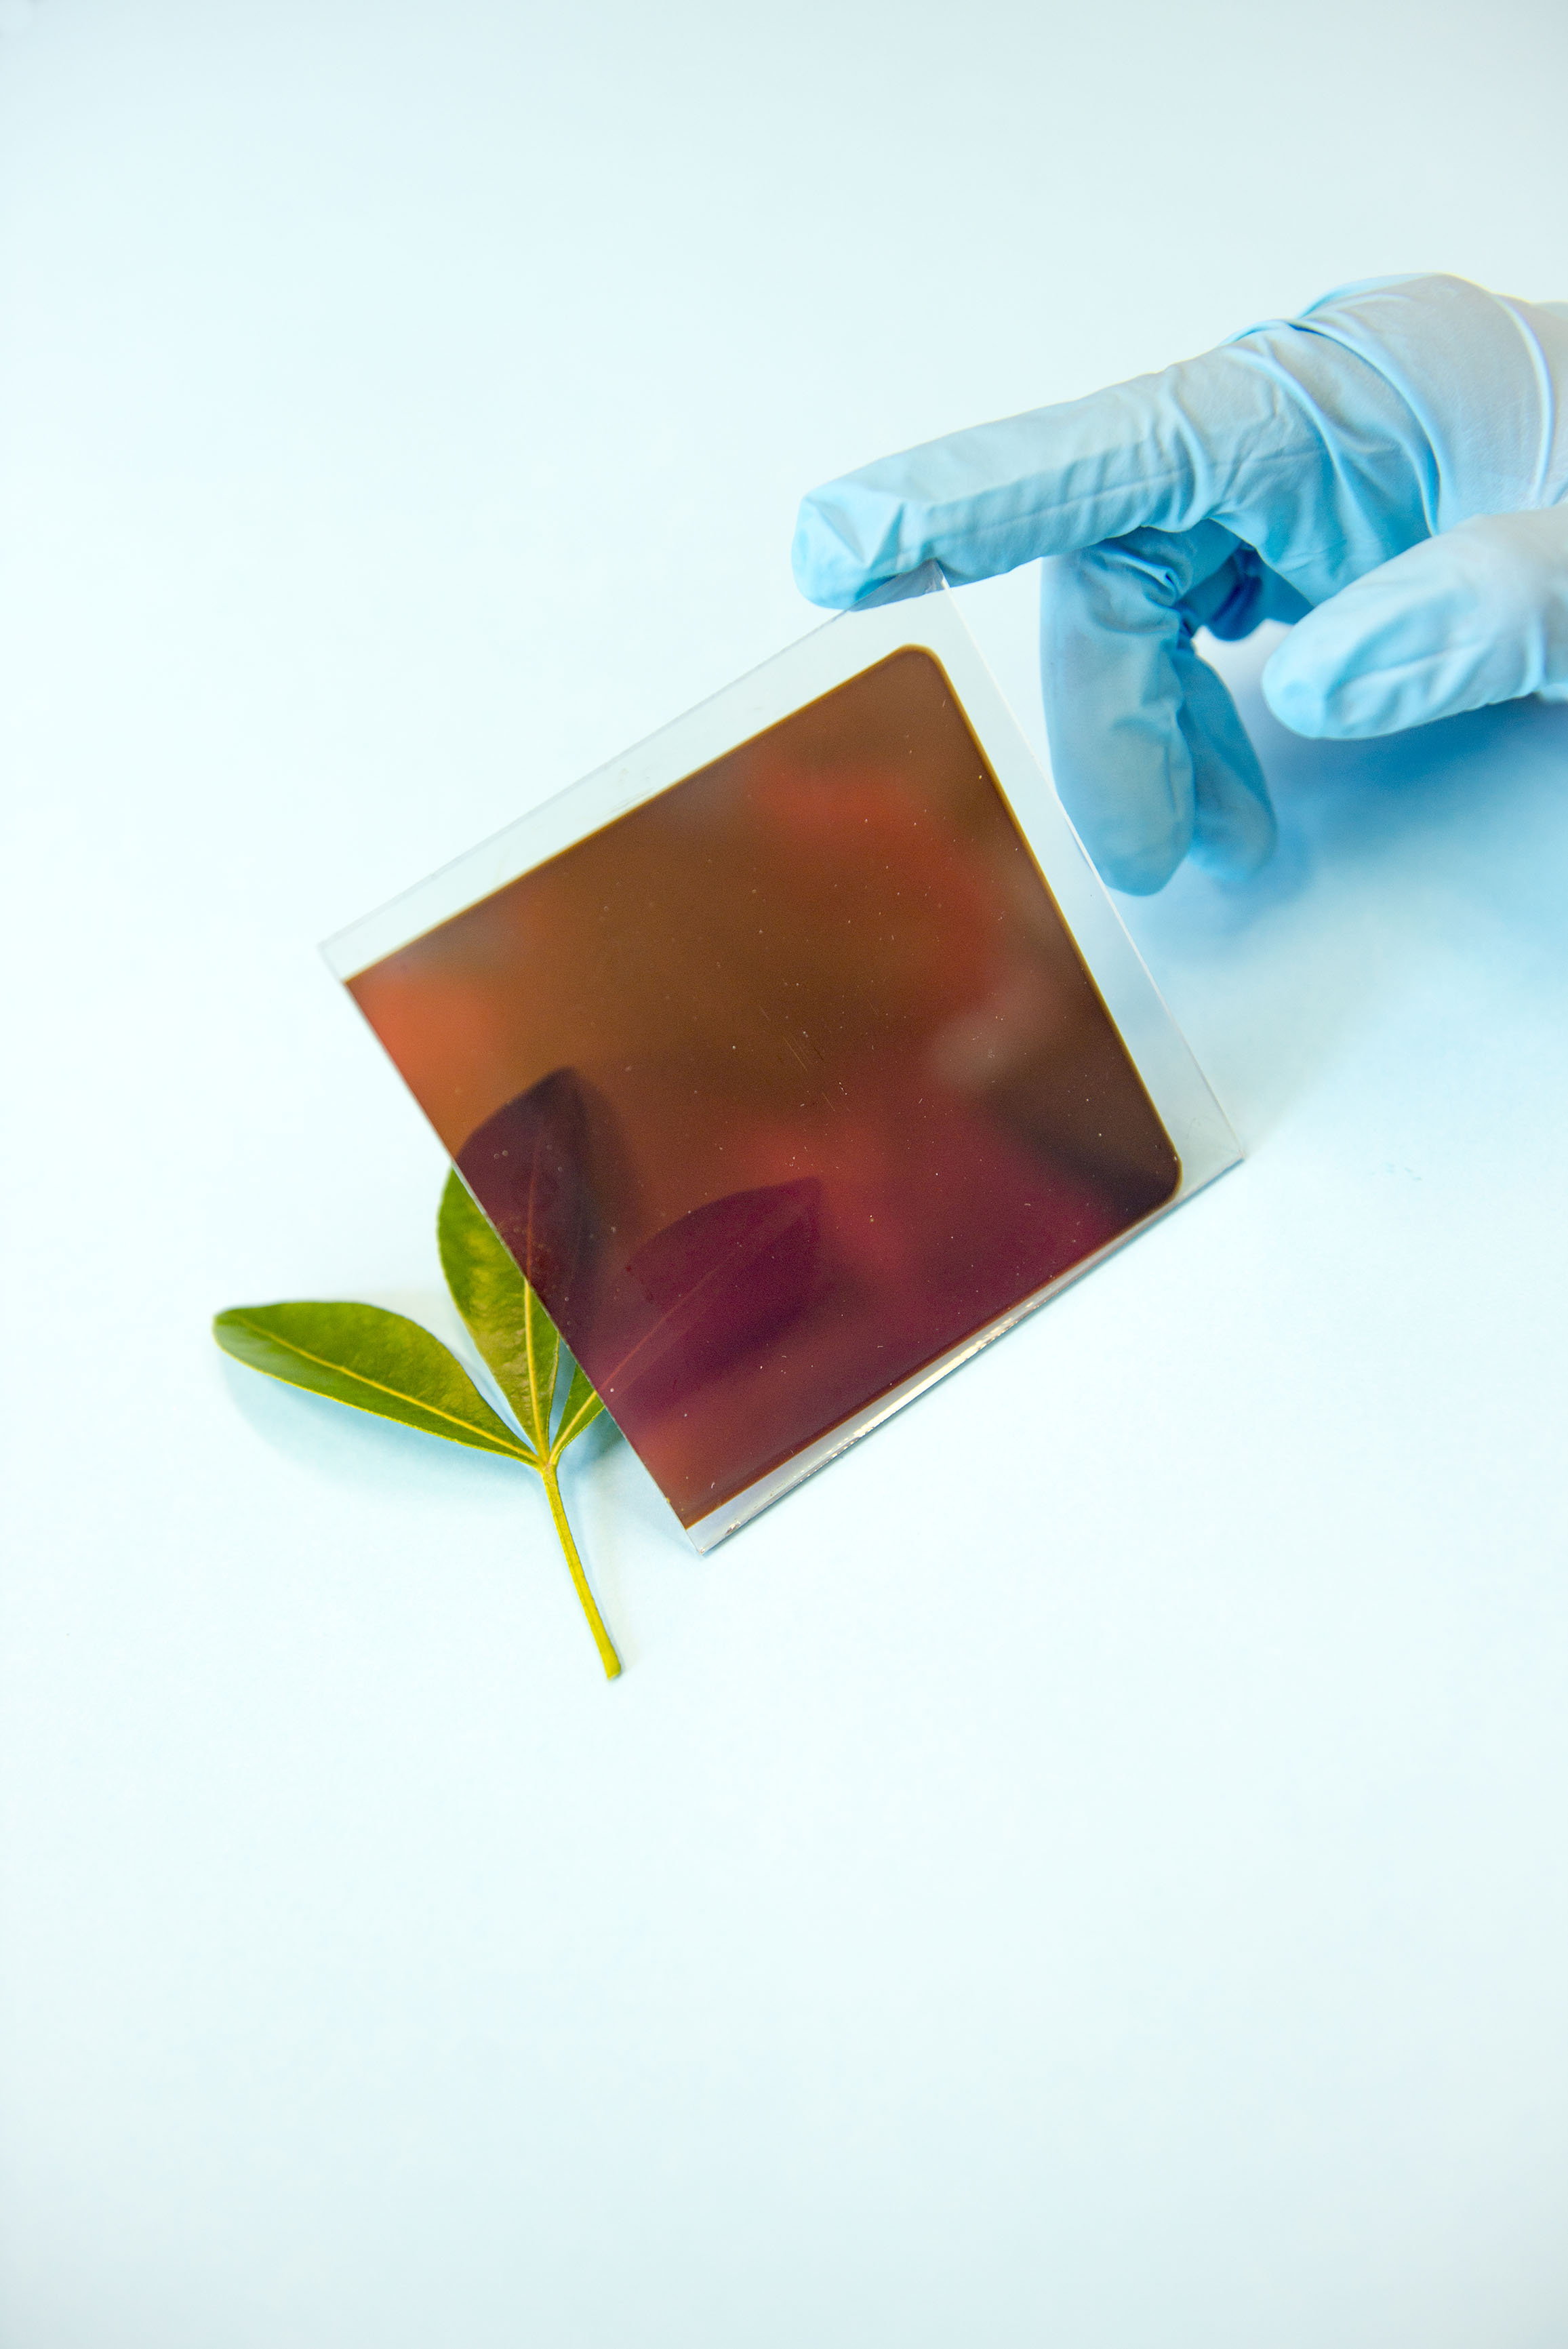 Team Of Physicists Find Perovskite Can Be Used In